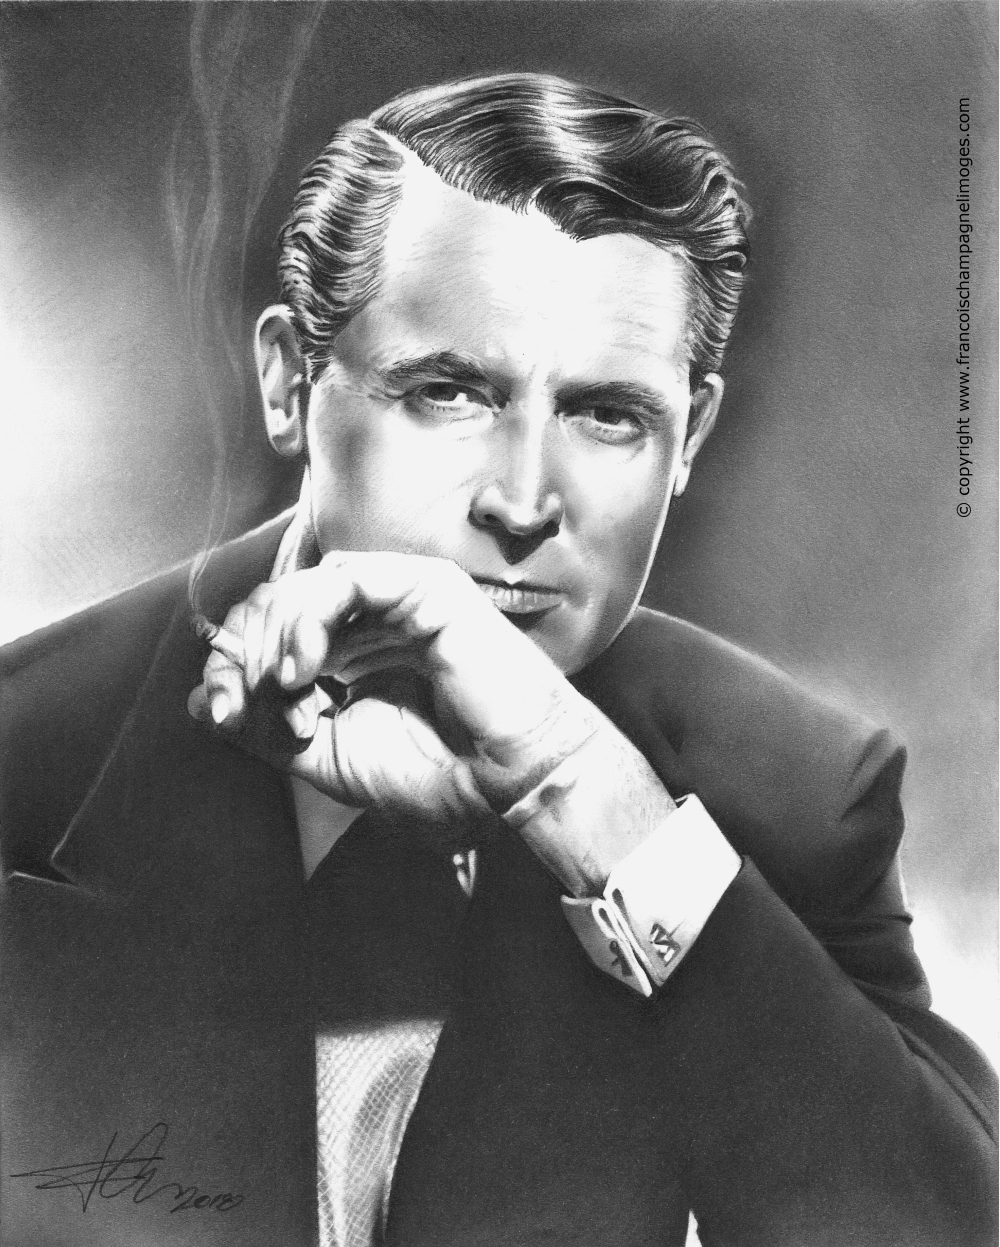 Cary_Grant_Original_Scan_600dpi_DARKER_w_copyright